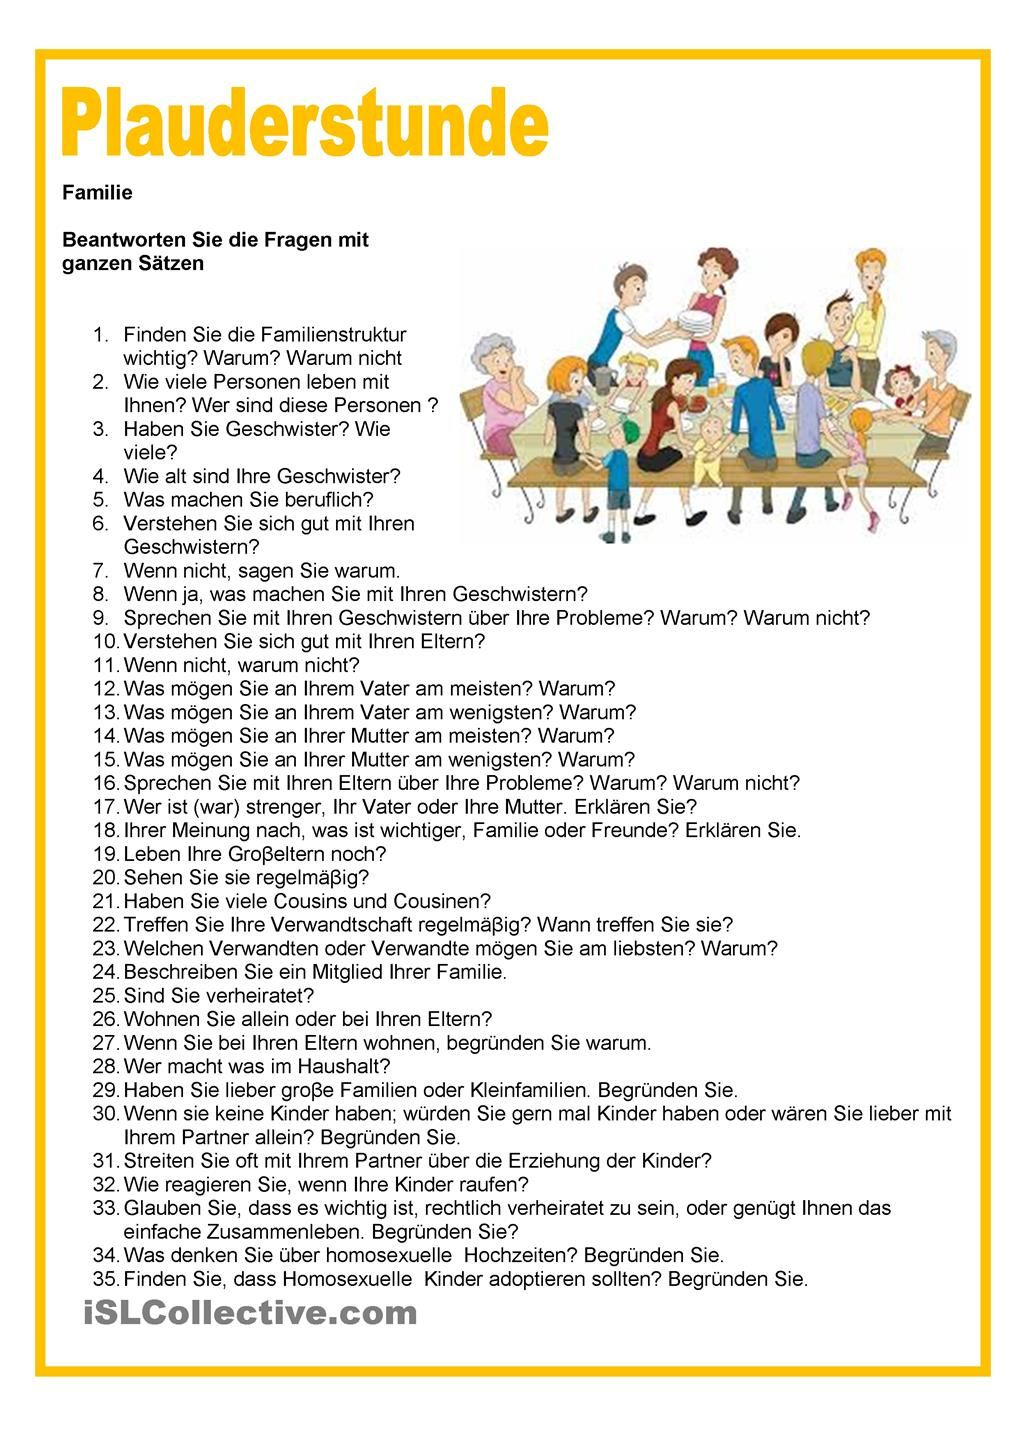 Plauderstunde - Familie | german | Pinterest | Printable worksheets ...